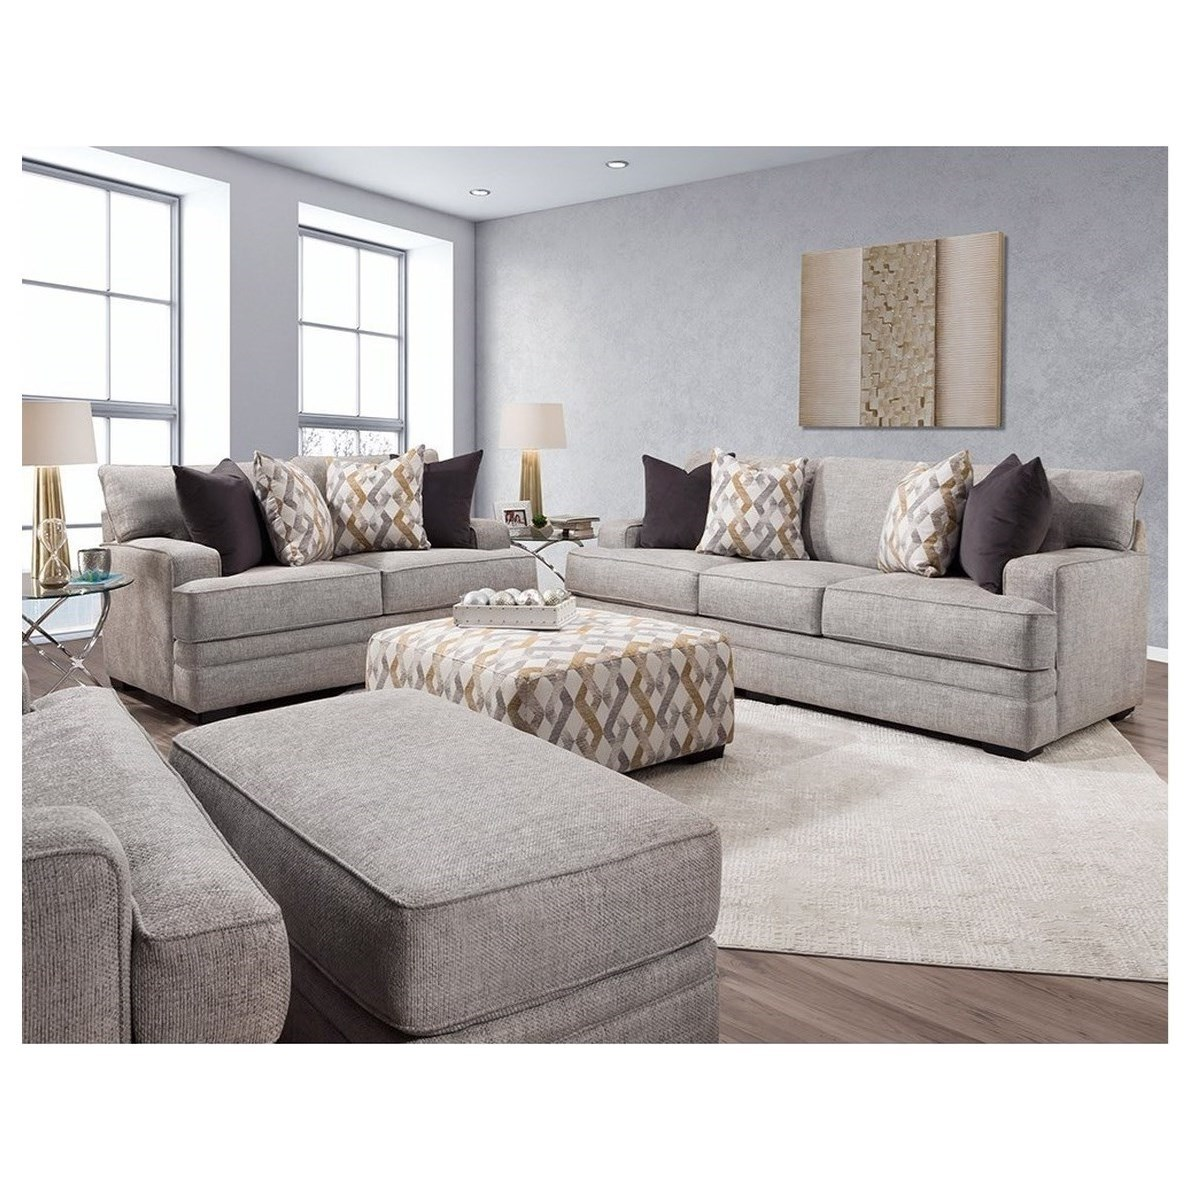 953 Stationary Living Room Group by Franklin at Lagniappe Home Store